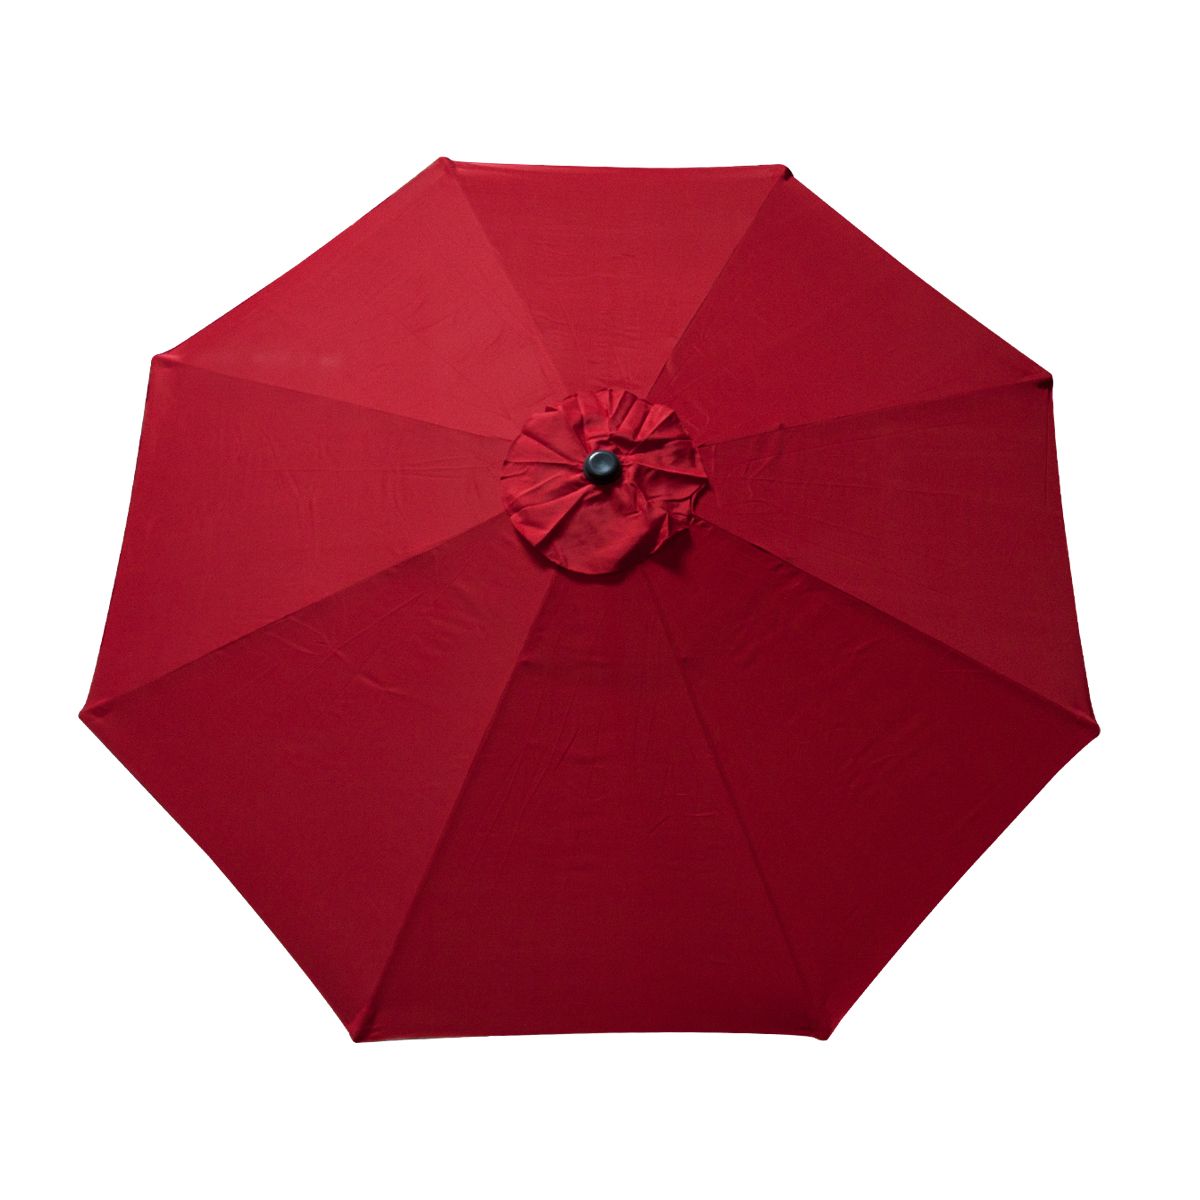 Patio Umbrella Replacement Canopy: 9 FT 8 Ribs Replacement Umbrella Cover Canopy Red Top